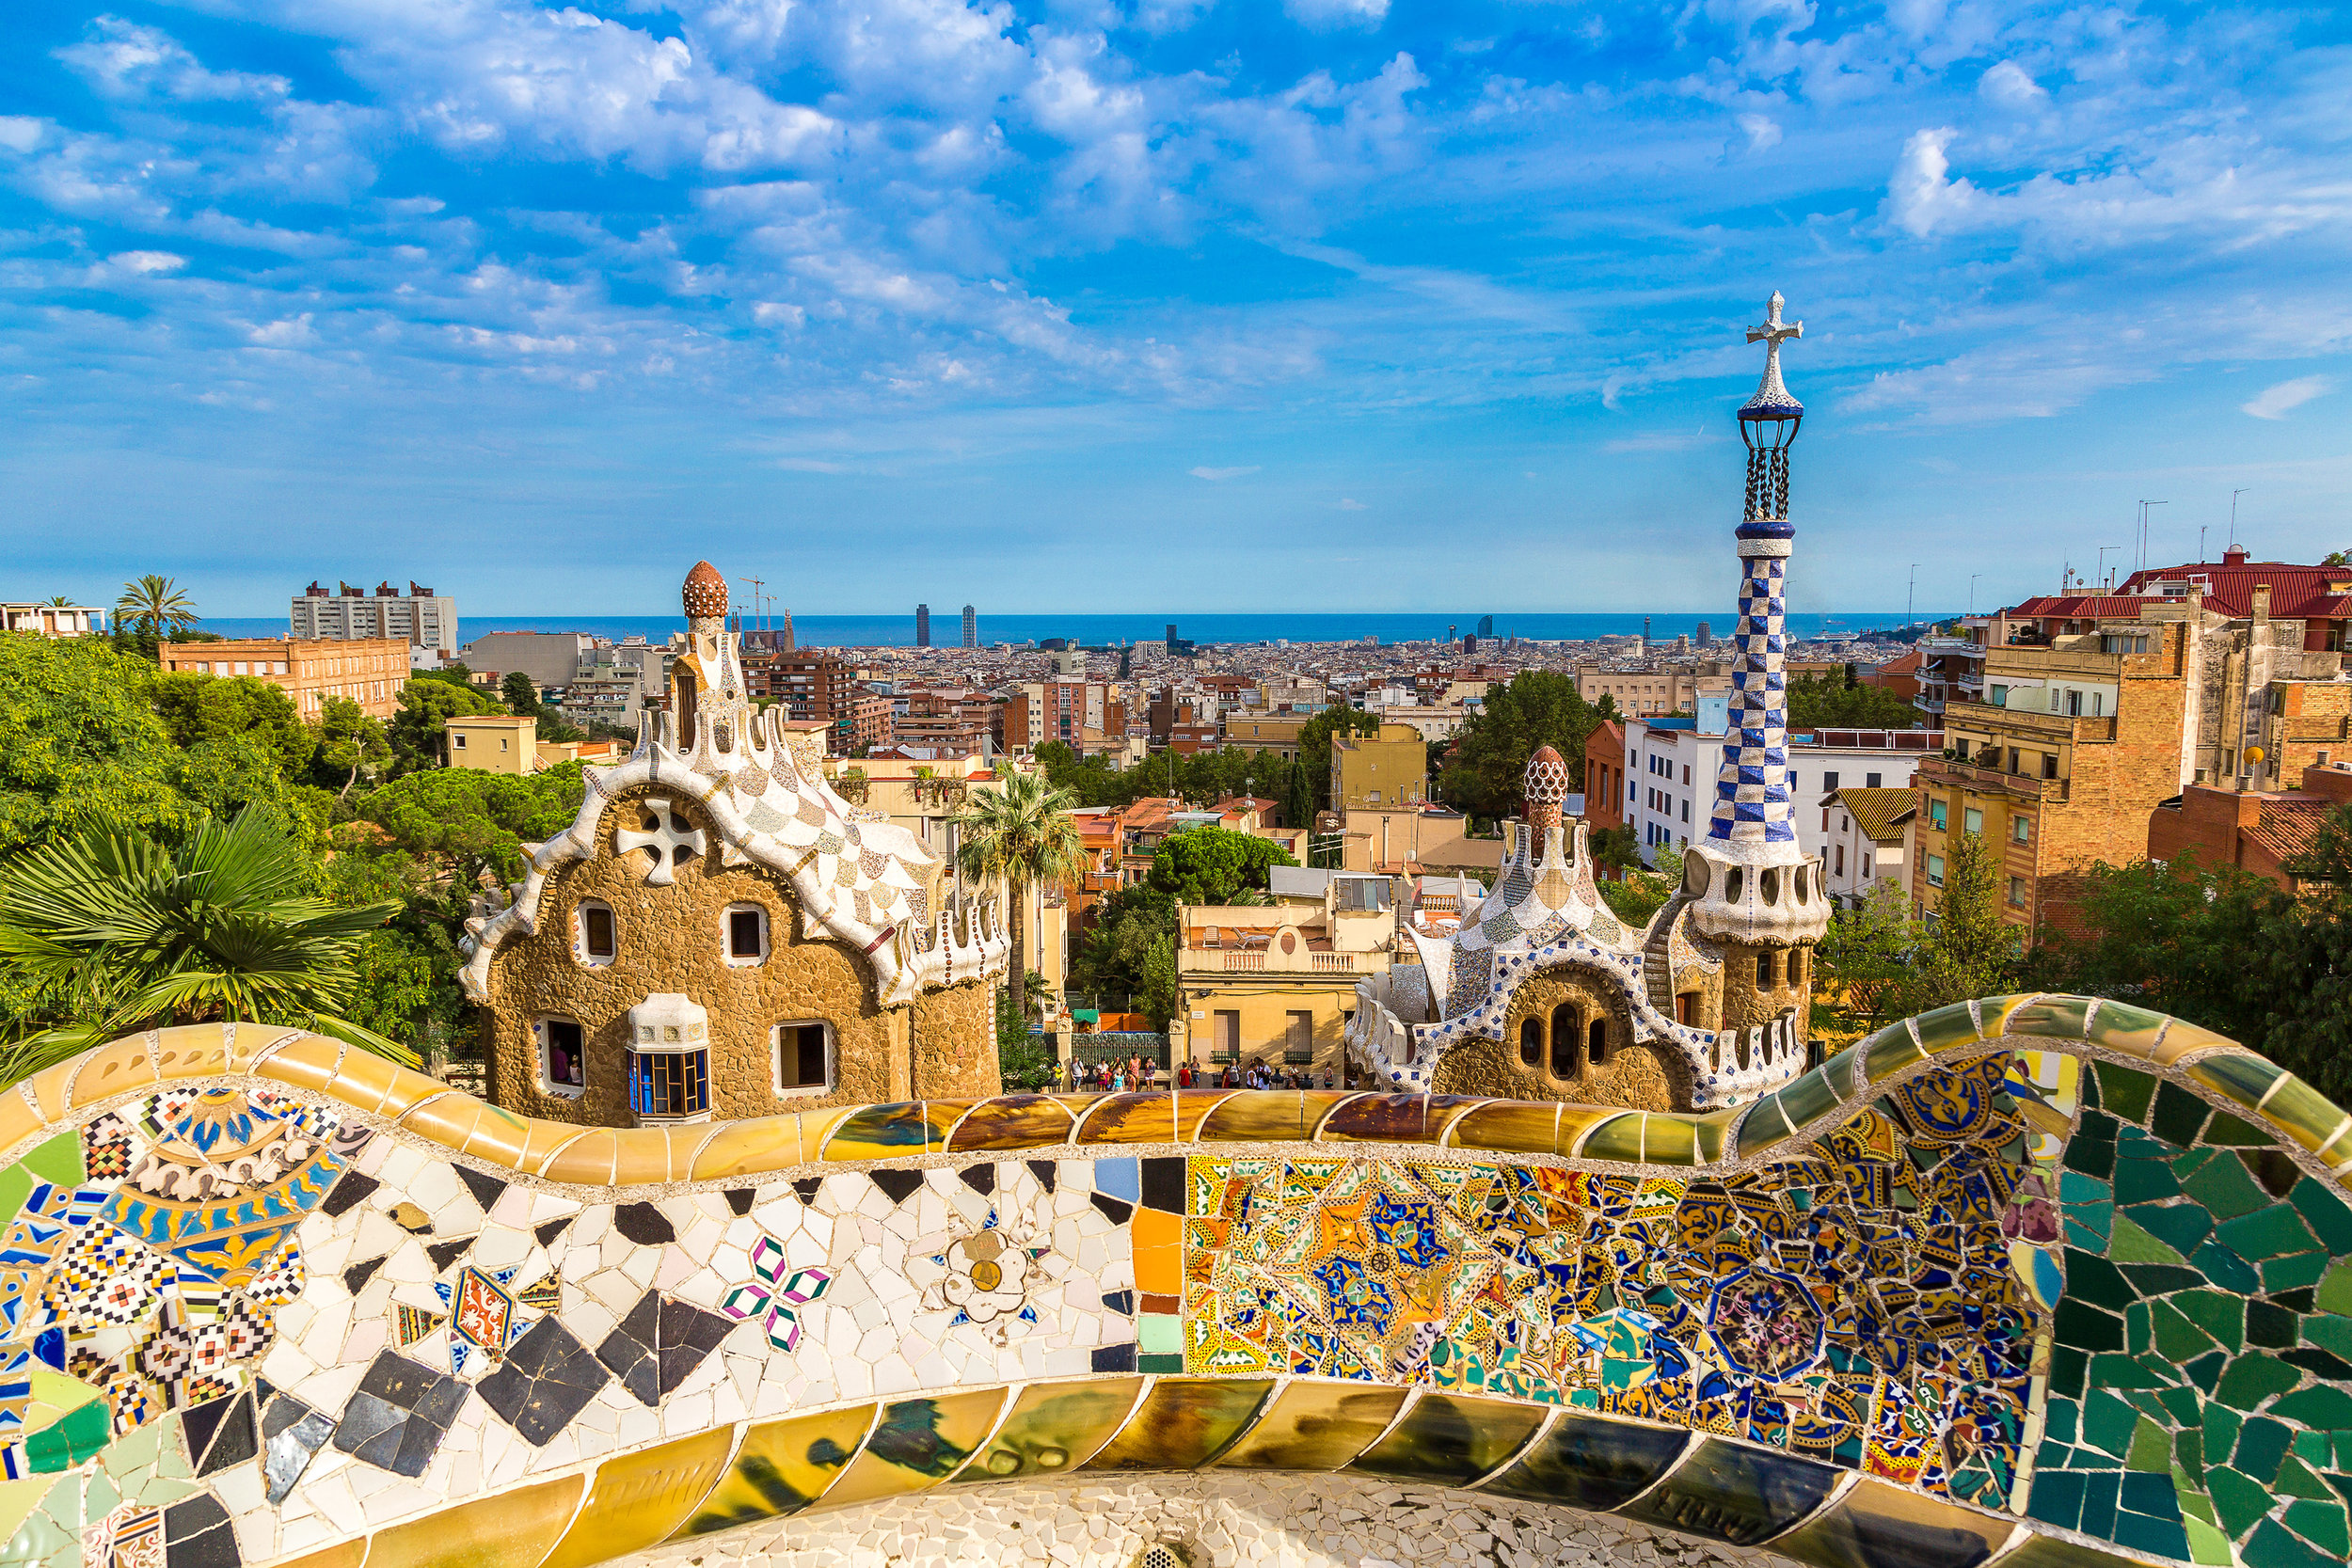 Visit the Sagrada Familia, head on over to the Nou Camp or soak in the views from Park Güell (pictured) in Barcelona - one of the latest additions to the CityUnscripted map.